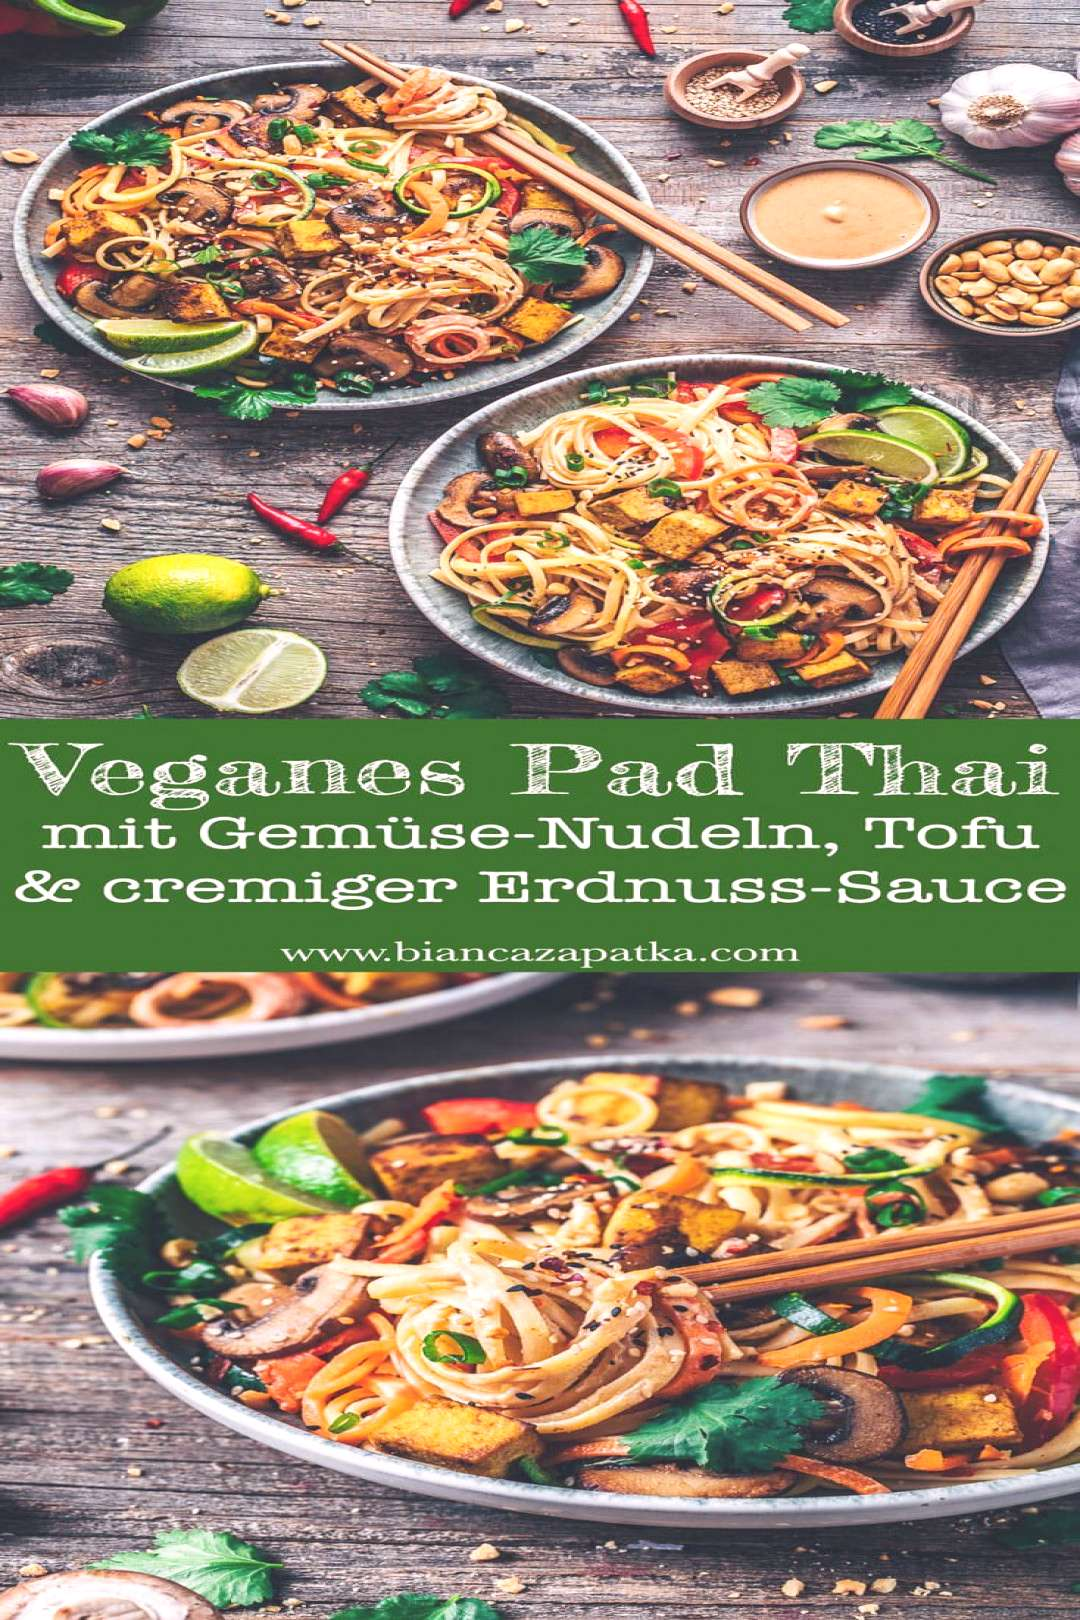 Vegan Pad Thai with vegetable noodles & tofu - Bianca Zapatka | Recipes -  Pad Thai with crispy tof